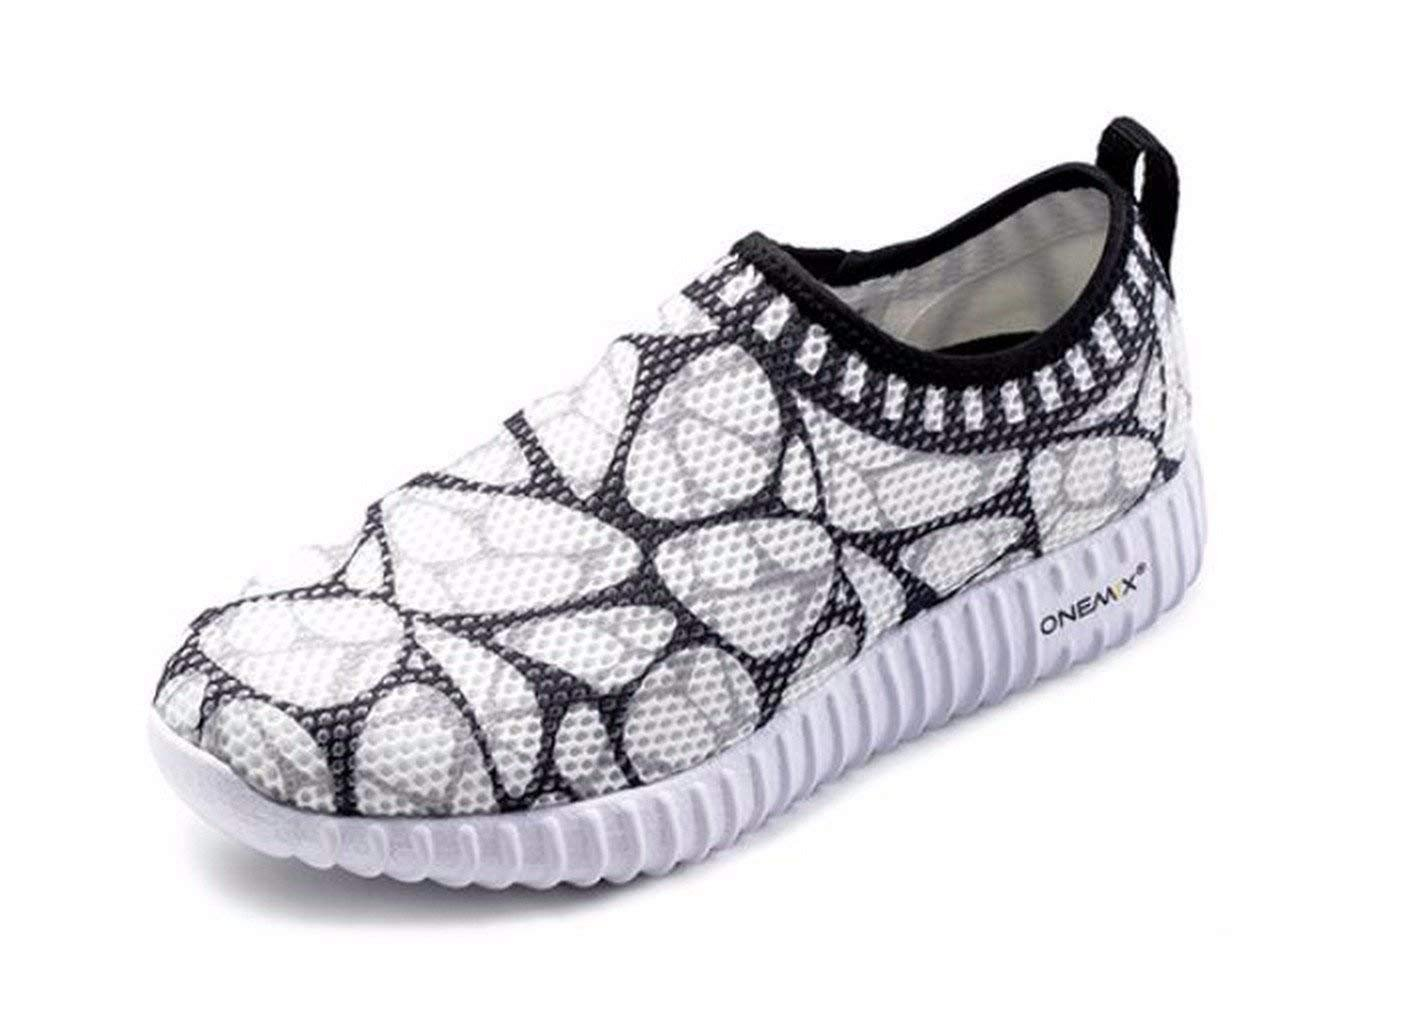 ONEMIX Women's Running Shoes Lightweight Brethable Mesh Roshe Run Walking Shoes Outdoor Sport Trainer Jogging Shoes Athletic Gym Light Sneaker - Black 7